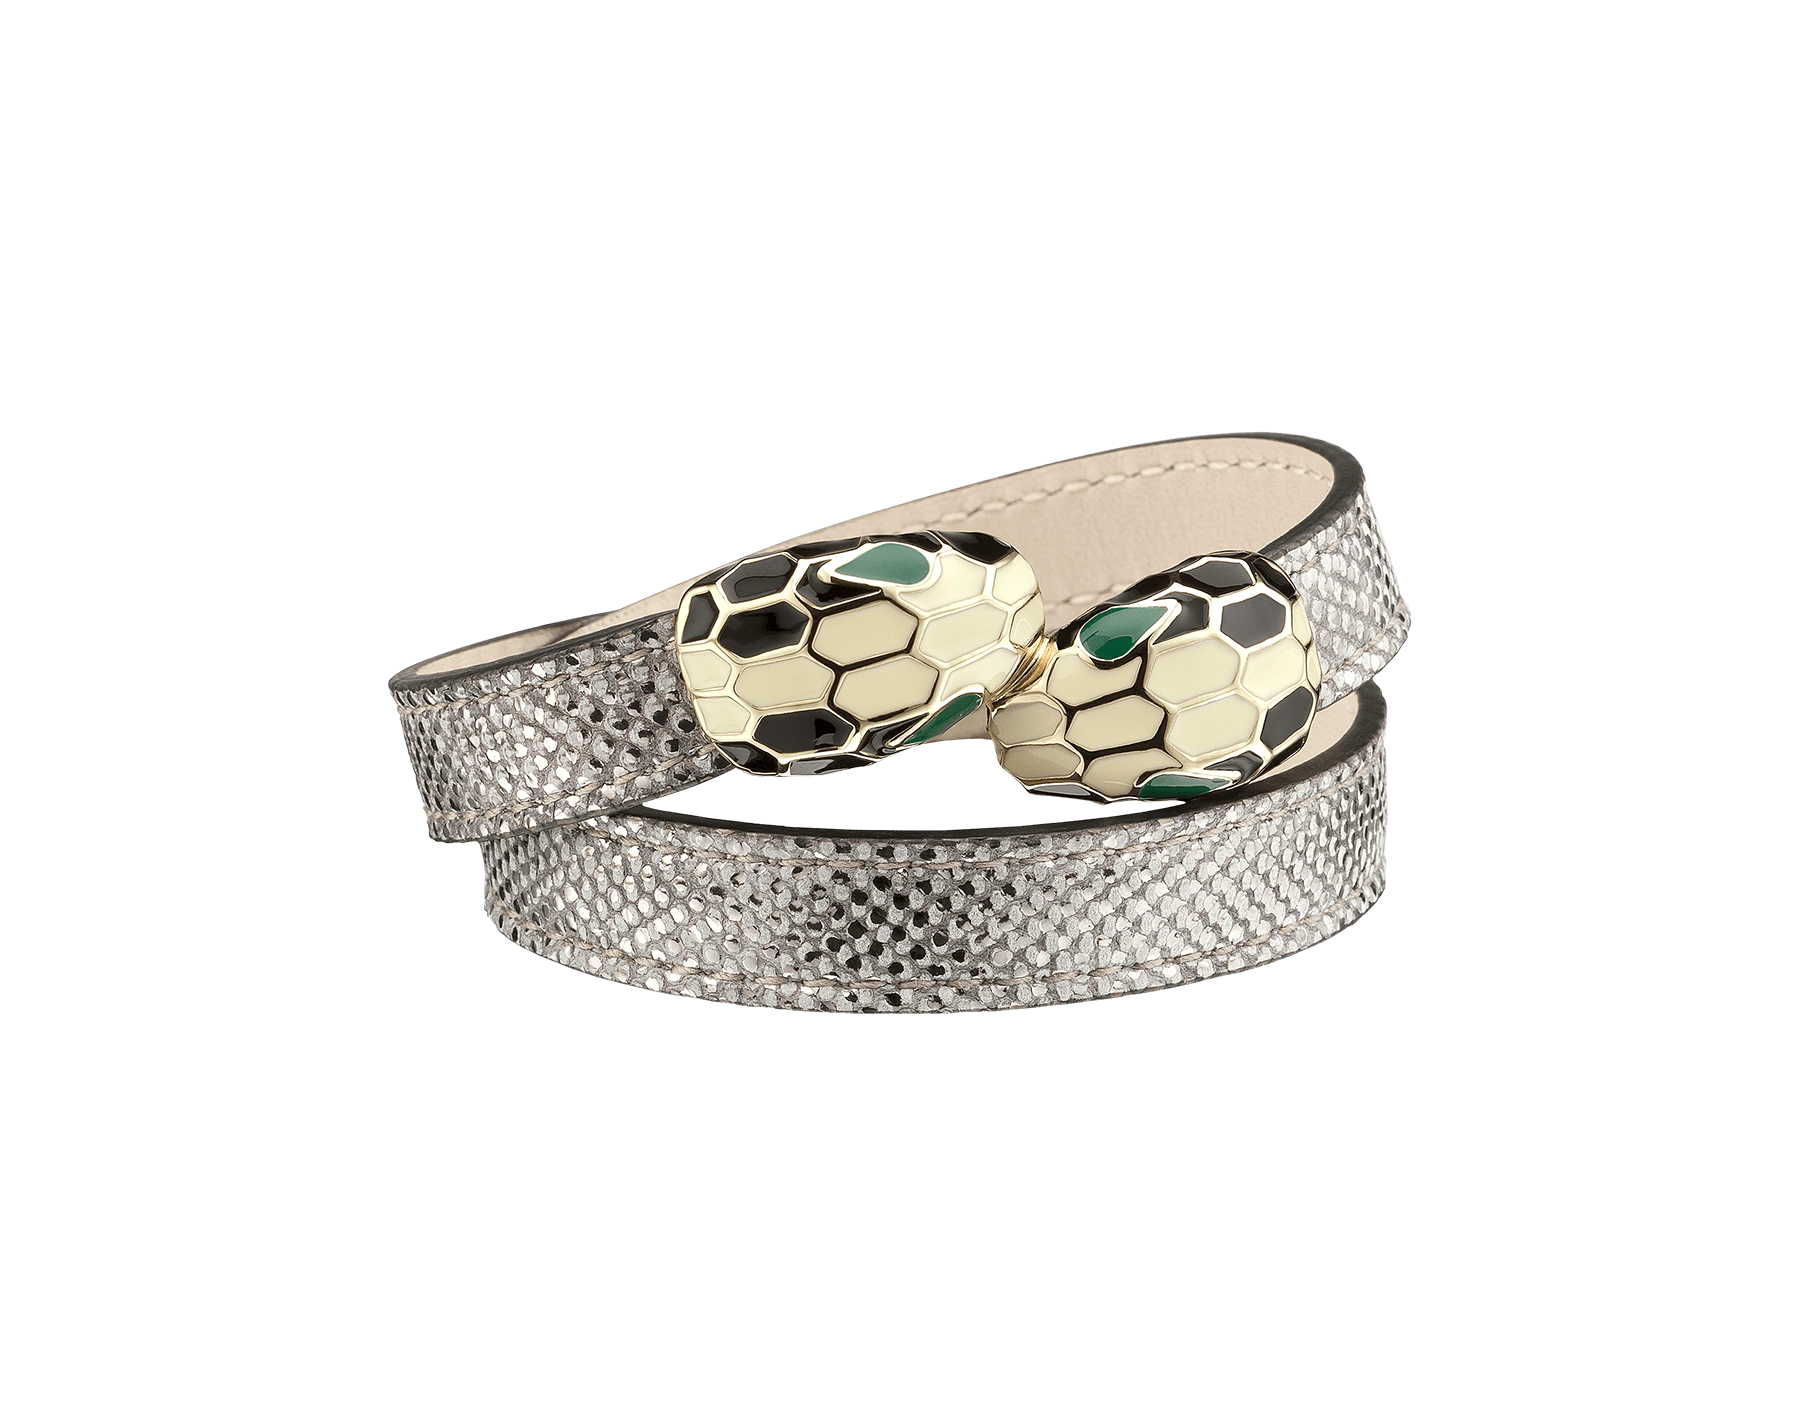 Multi-coiled bracelet in silver metallic karung skin. Brass light gold plated iconic contraire Serpenti heads in black and white enamel, with green enamel eyes. MCSerp-MK-S image 1